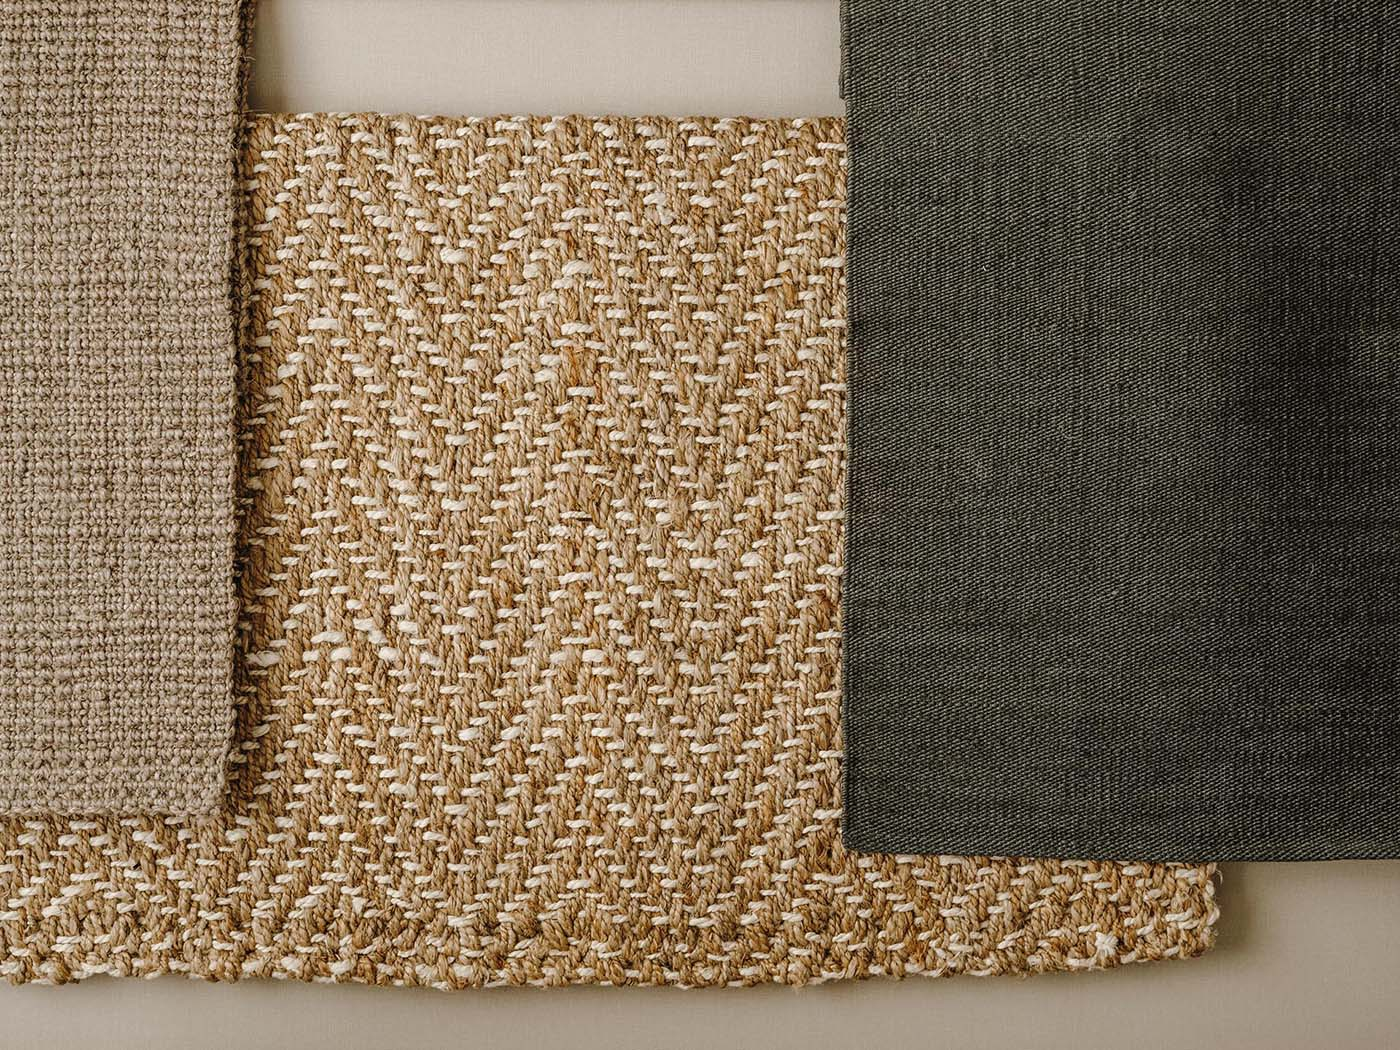 Natural fabric with different textures.